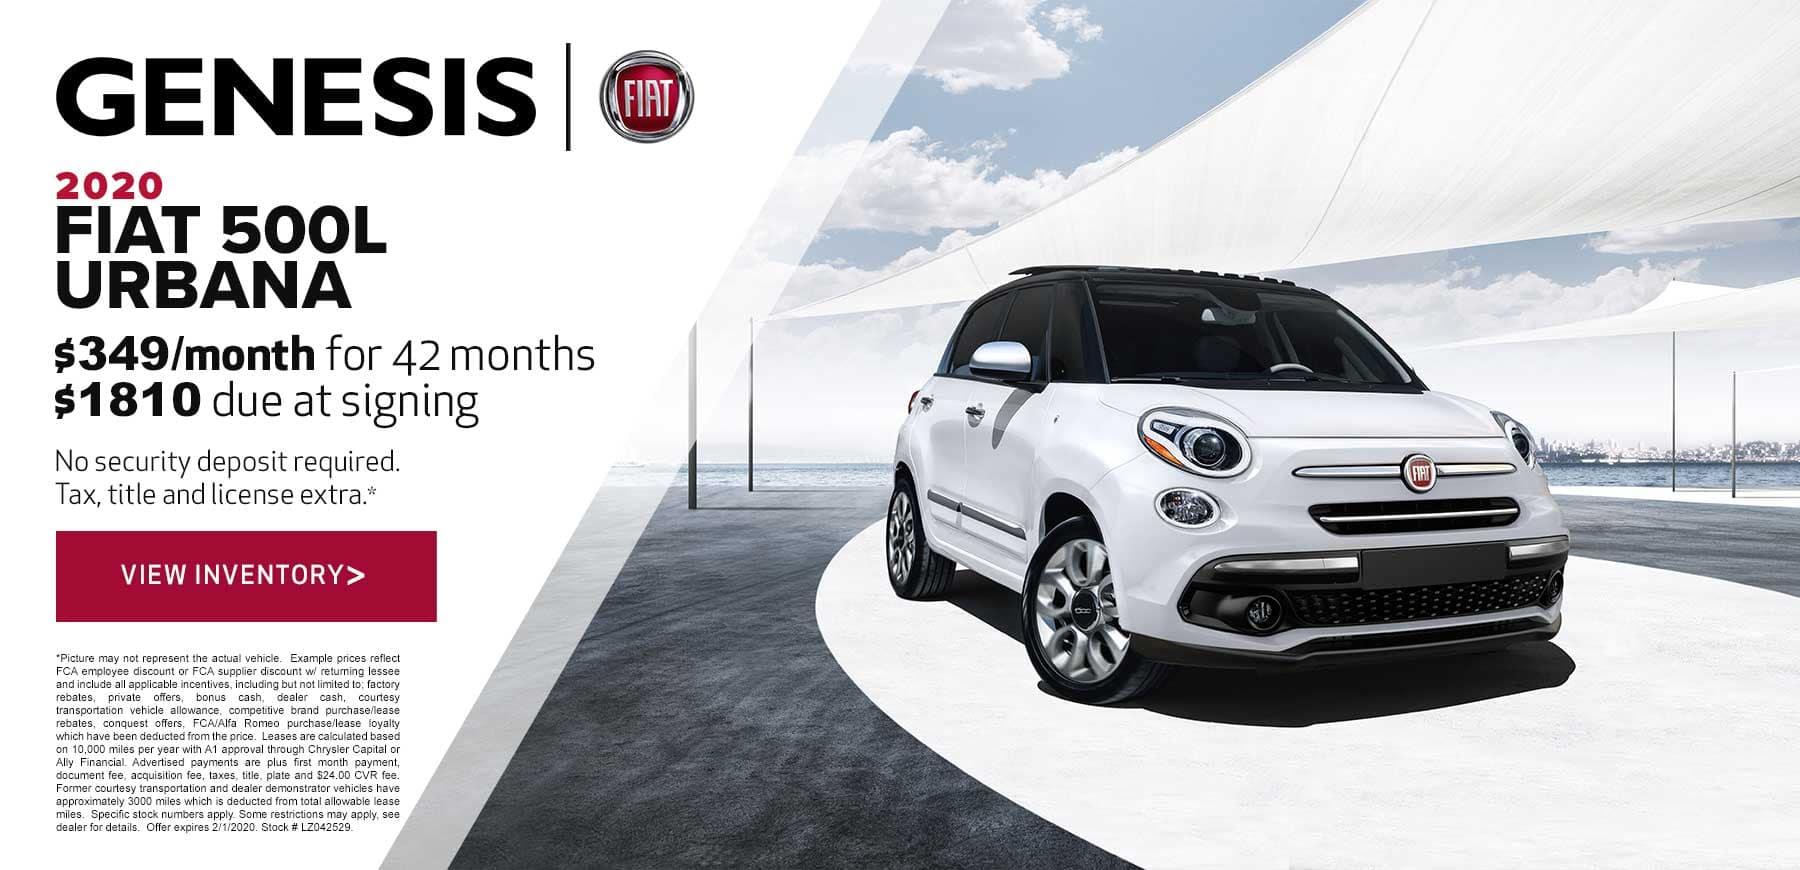 Genesis FIAT January 2021 500L Urbana Trekking Lease Offer